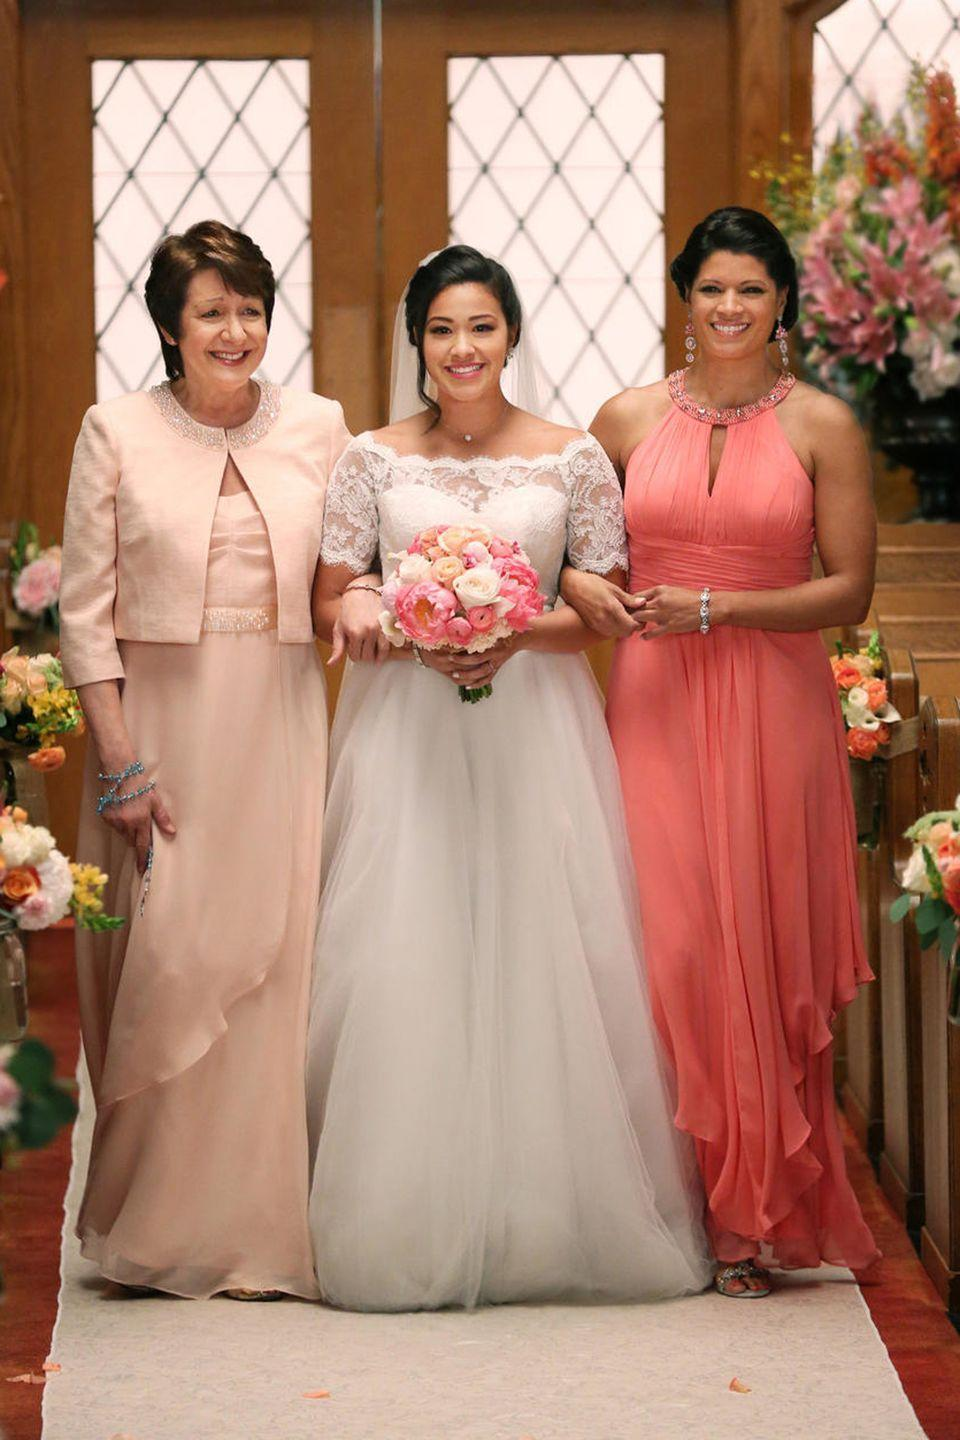 <p>Viewers were dying to see who Jane would end up with in the beginning of the show — Rafael or Michael — but in the end she walked down the aisle to marry Michael in the season 2 finale. She wore a lace boatneck gown, pinning her hair in an elegant updo. </p>